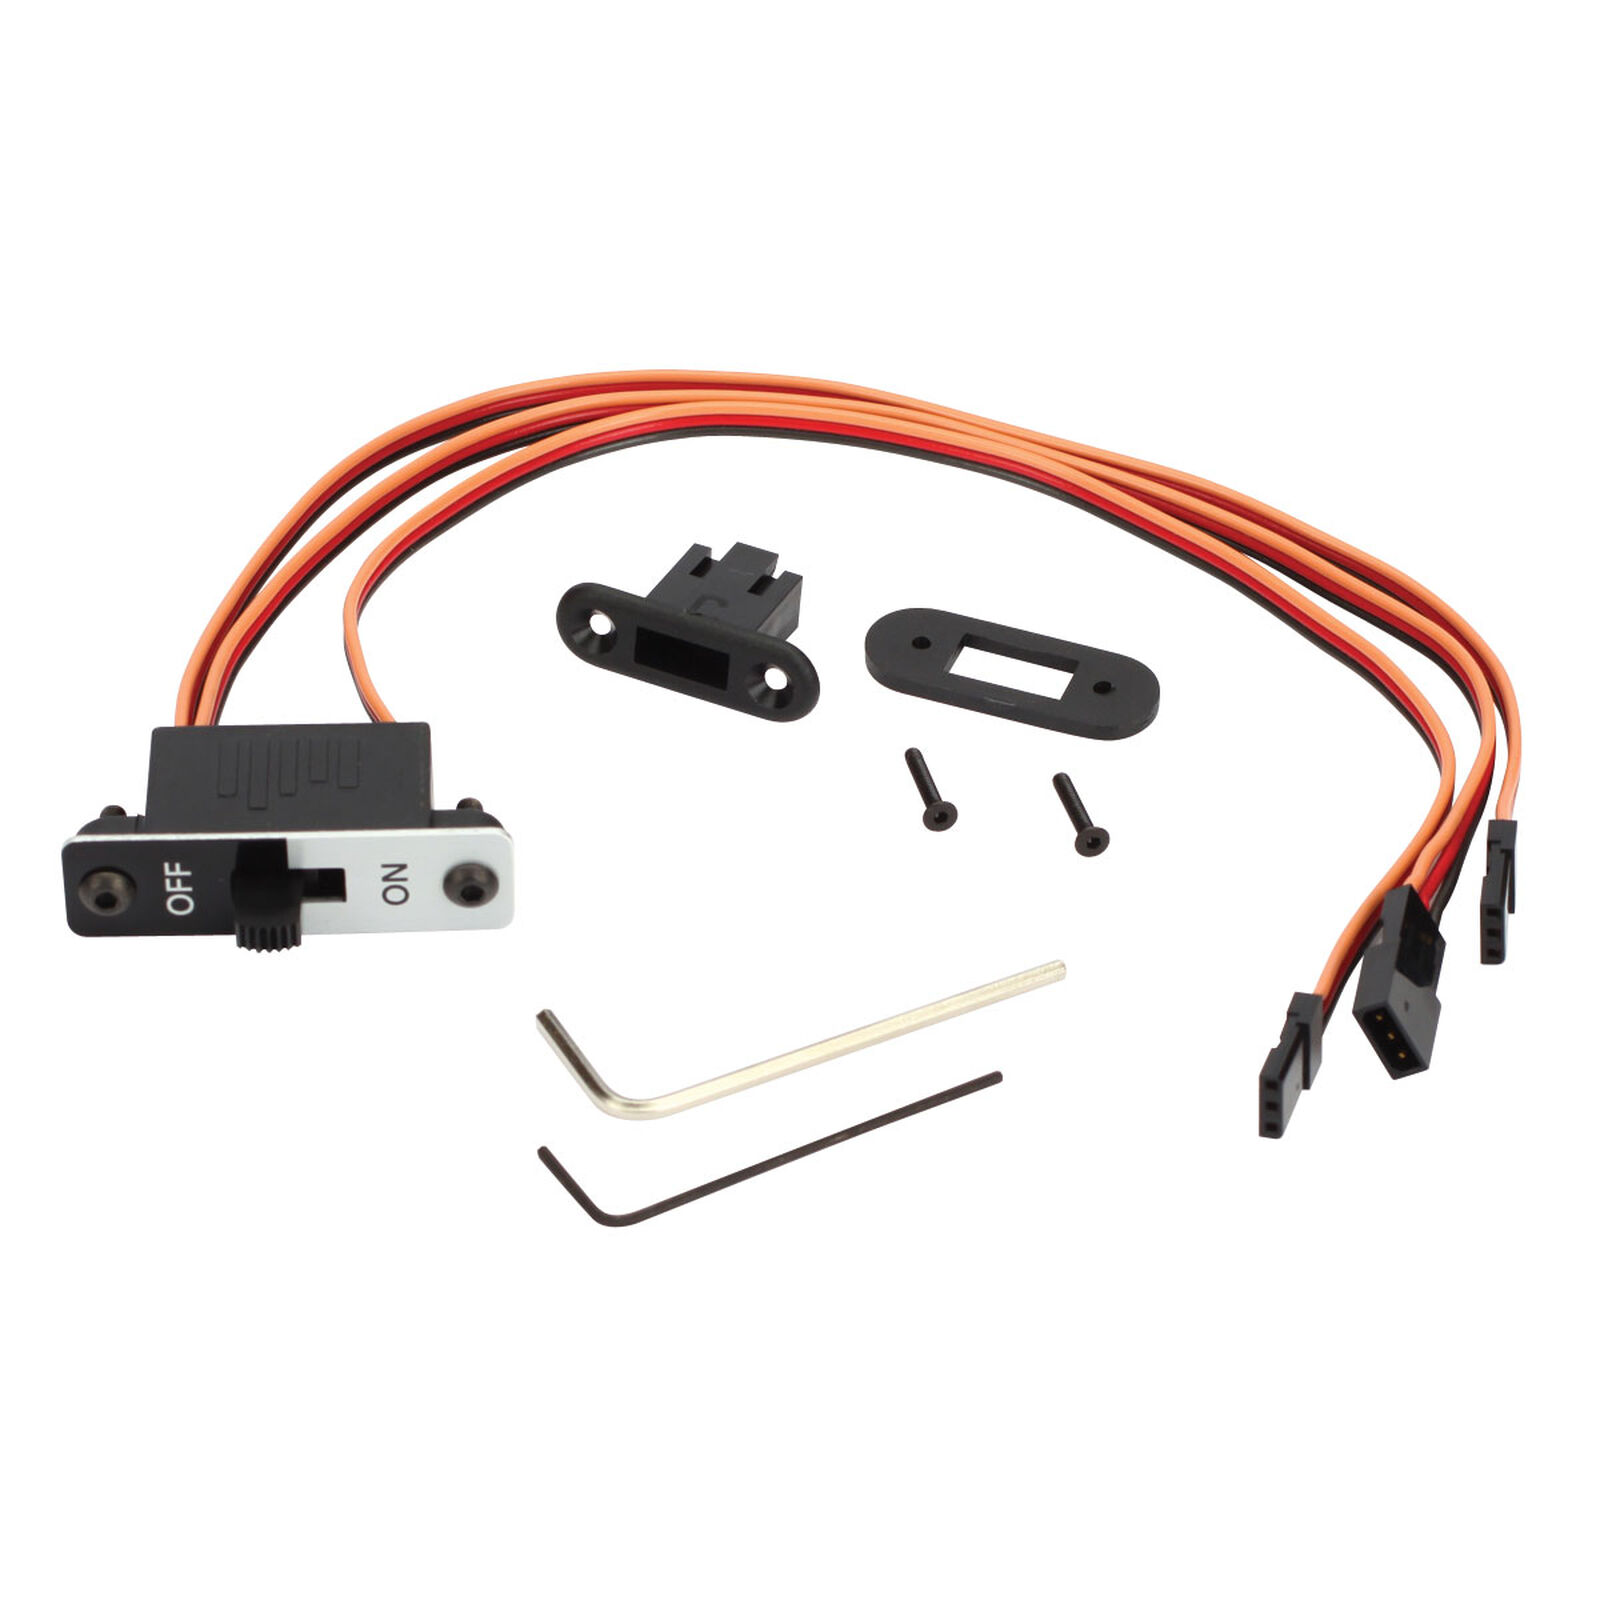 Switch Harness: Deluxe 3-Wire